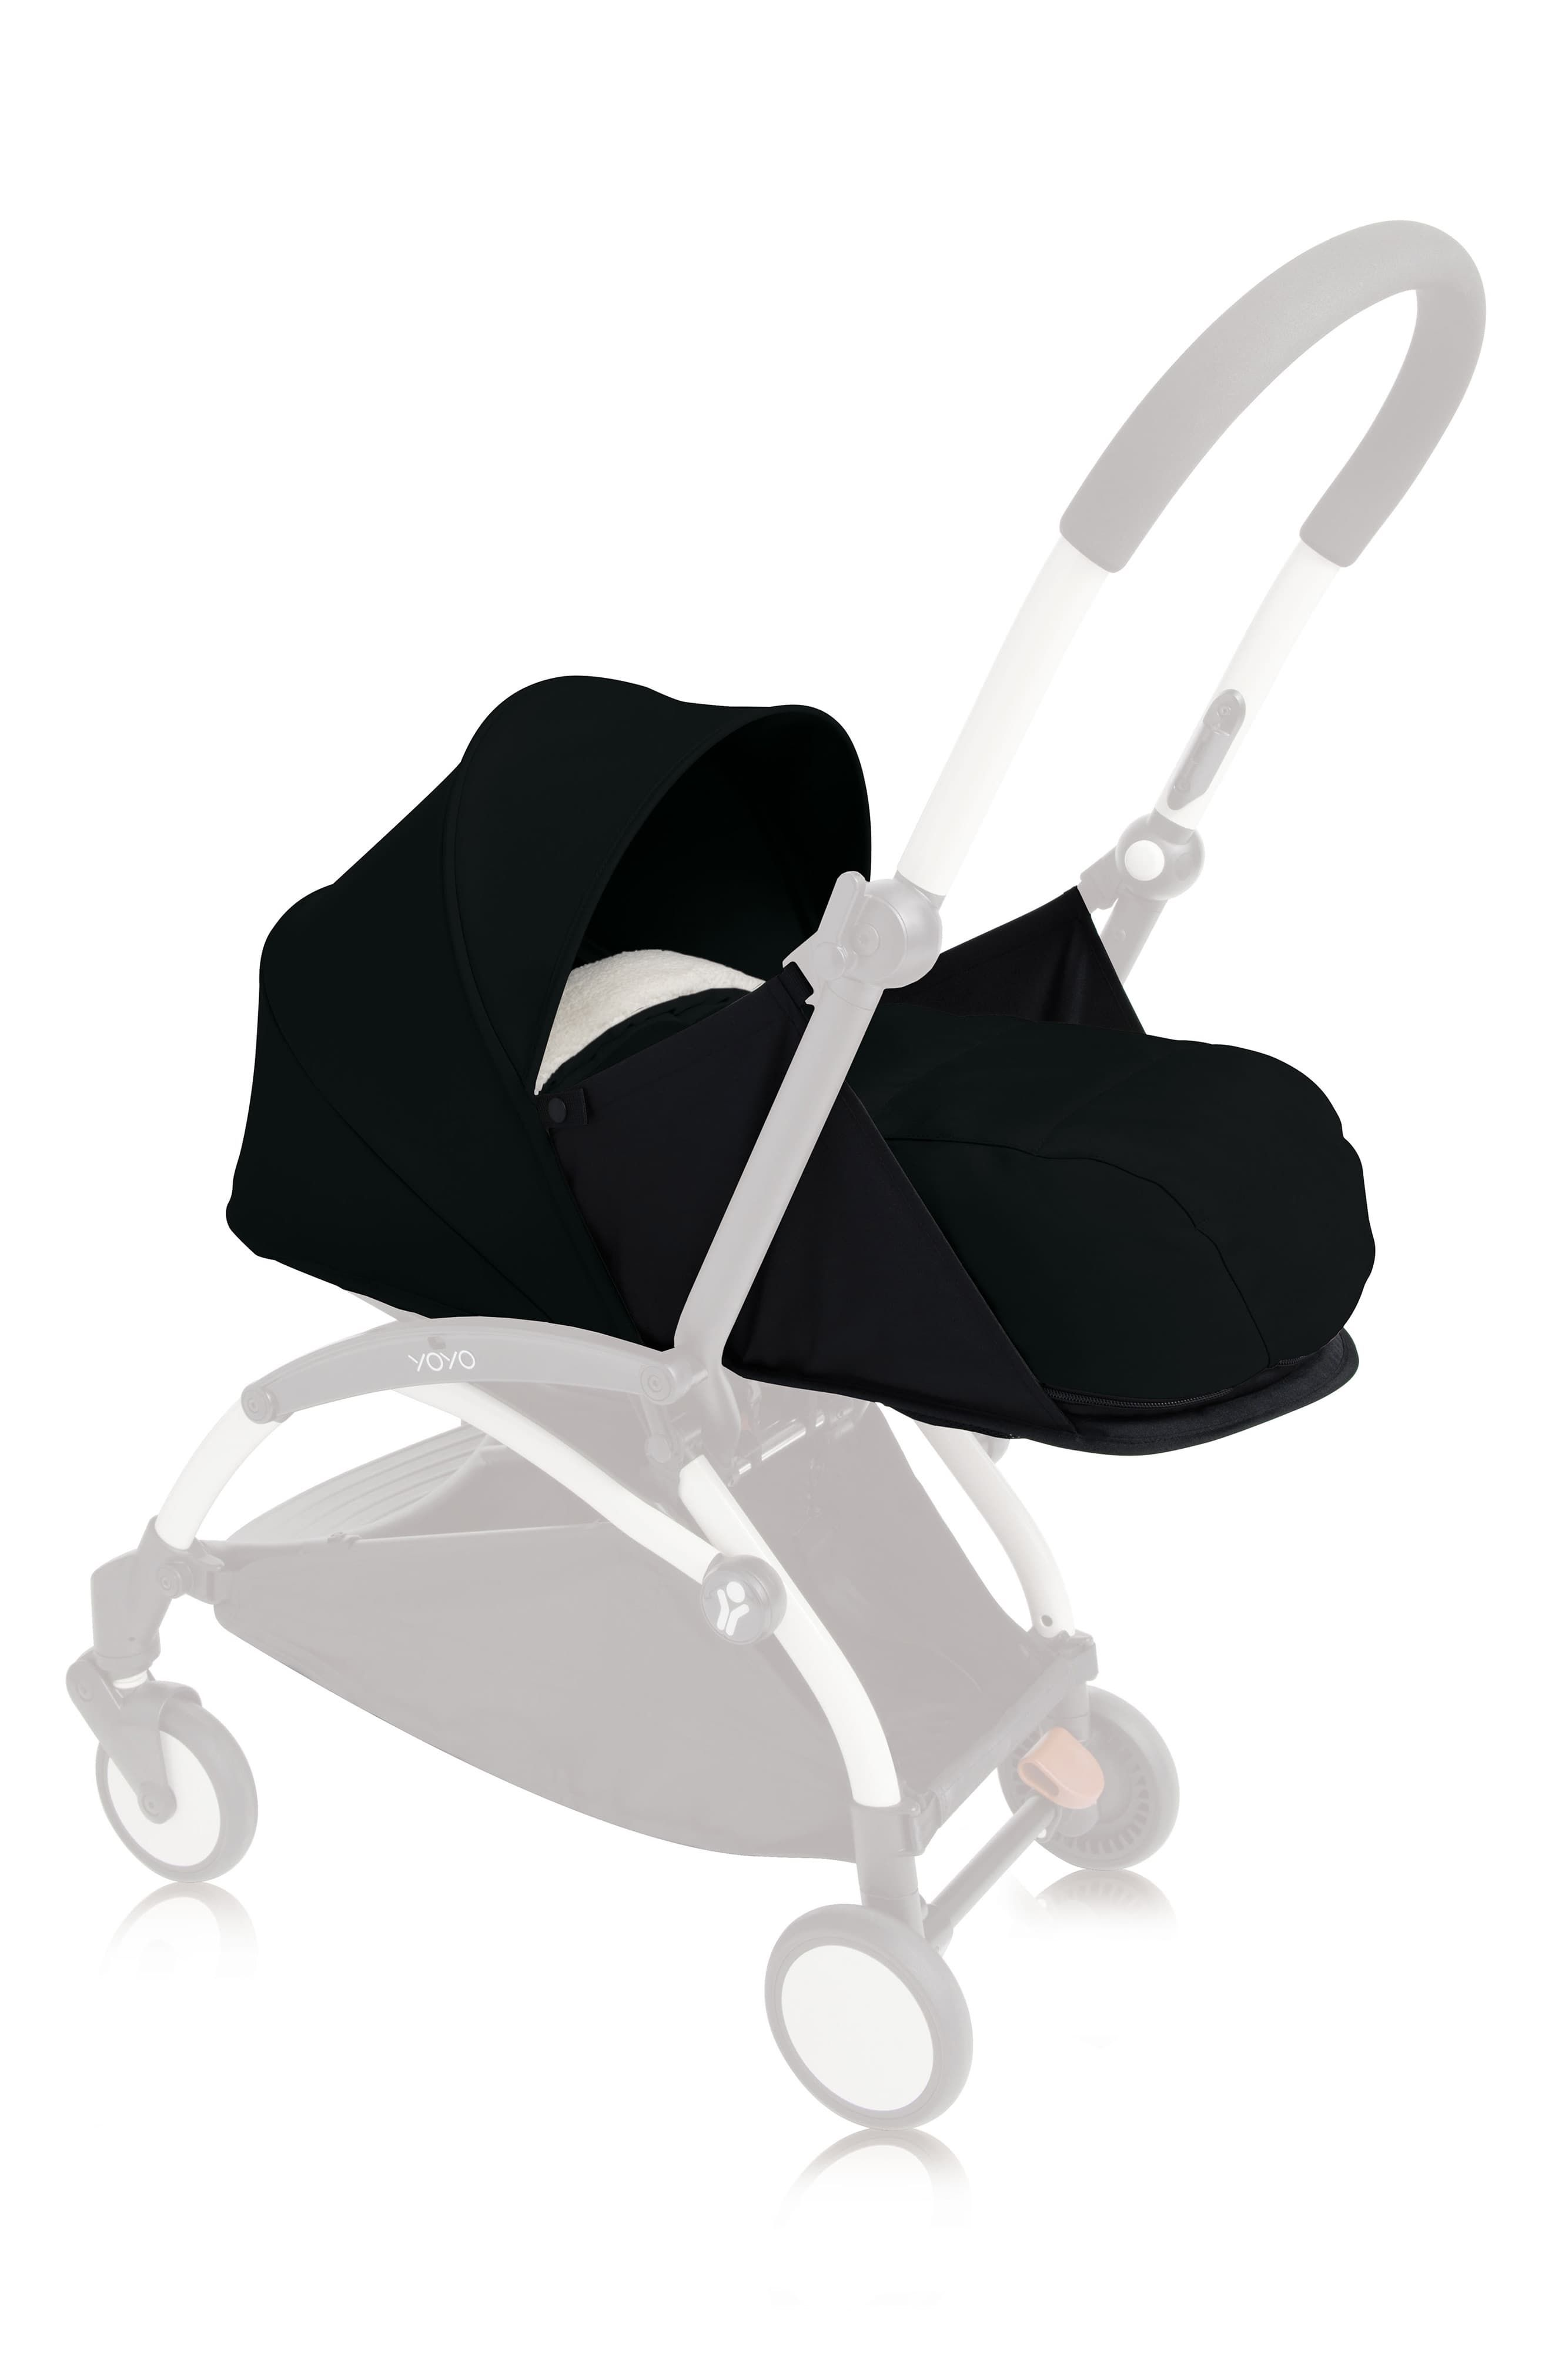 Phil/&Teds Smart Lux Stroller in Taupe Color Brand New! 21 Riding Positions!!